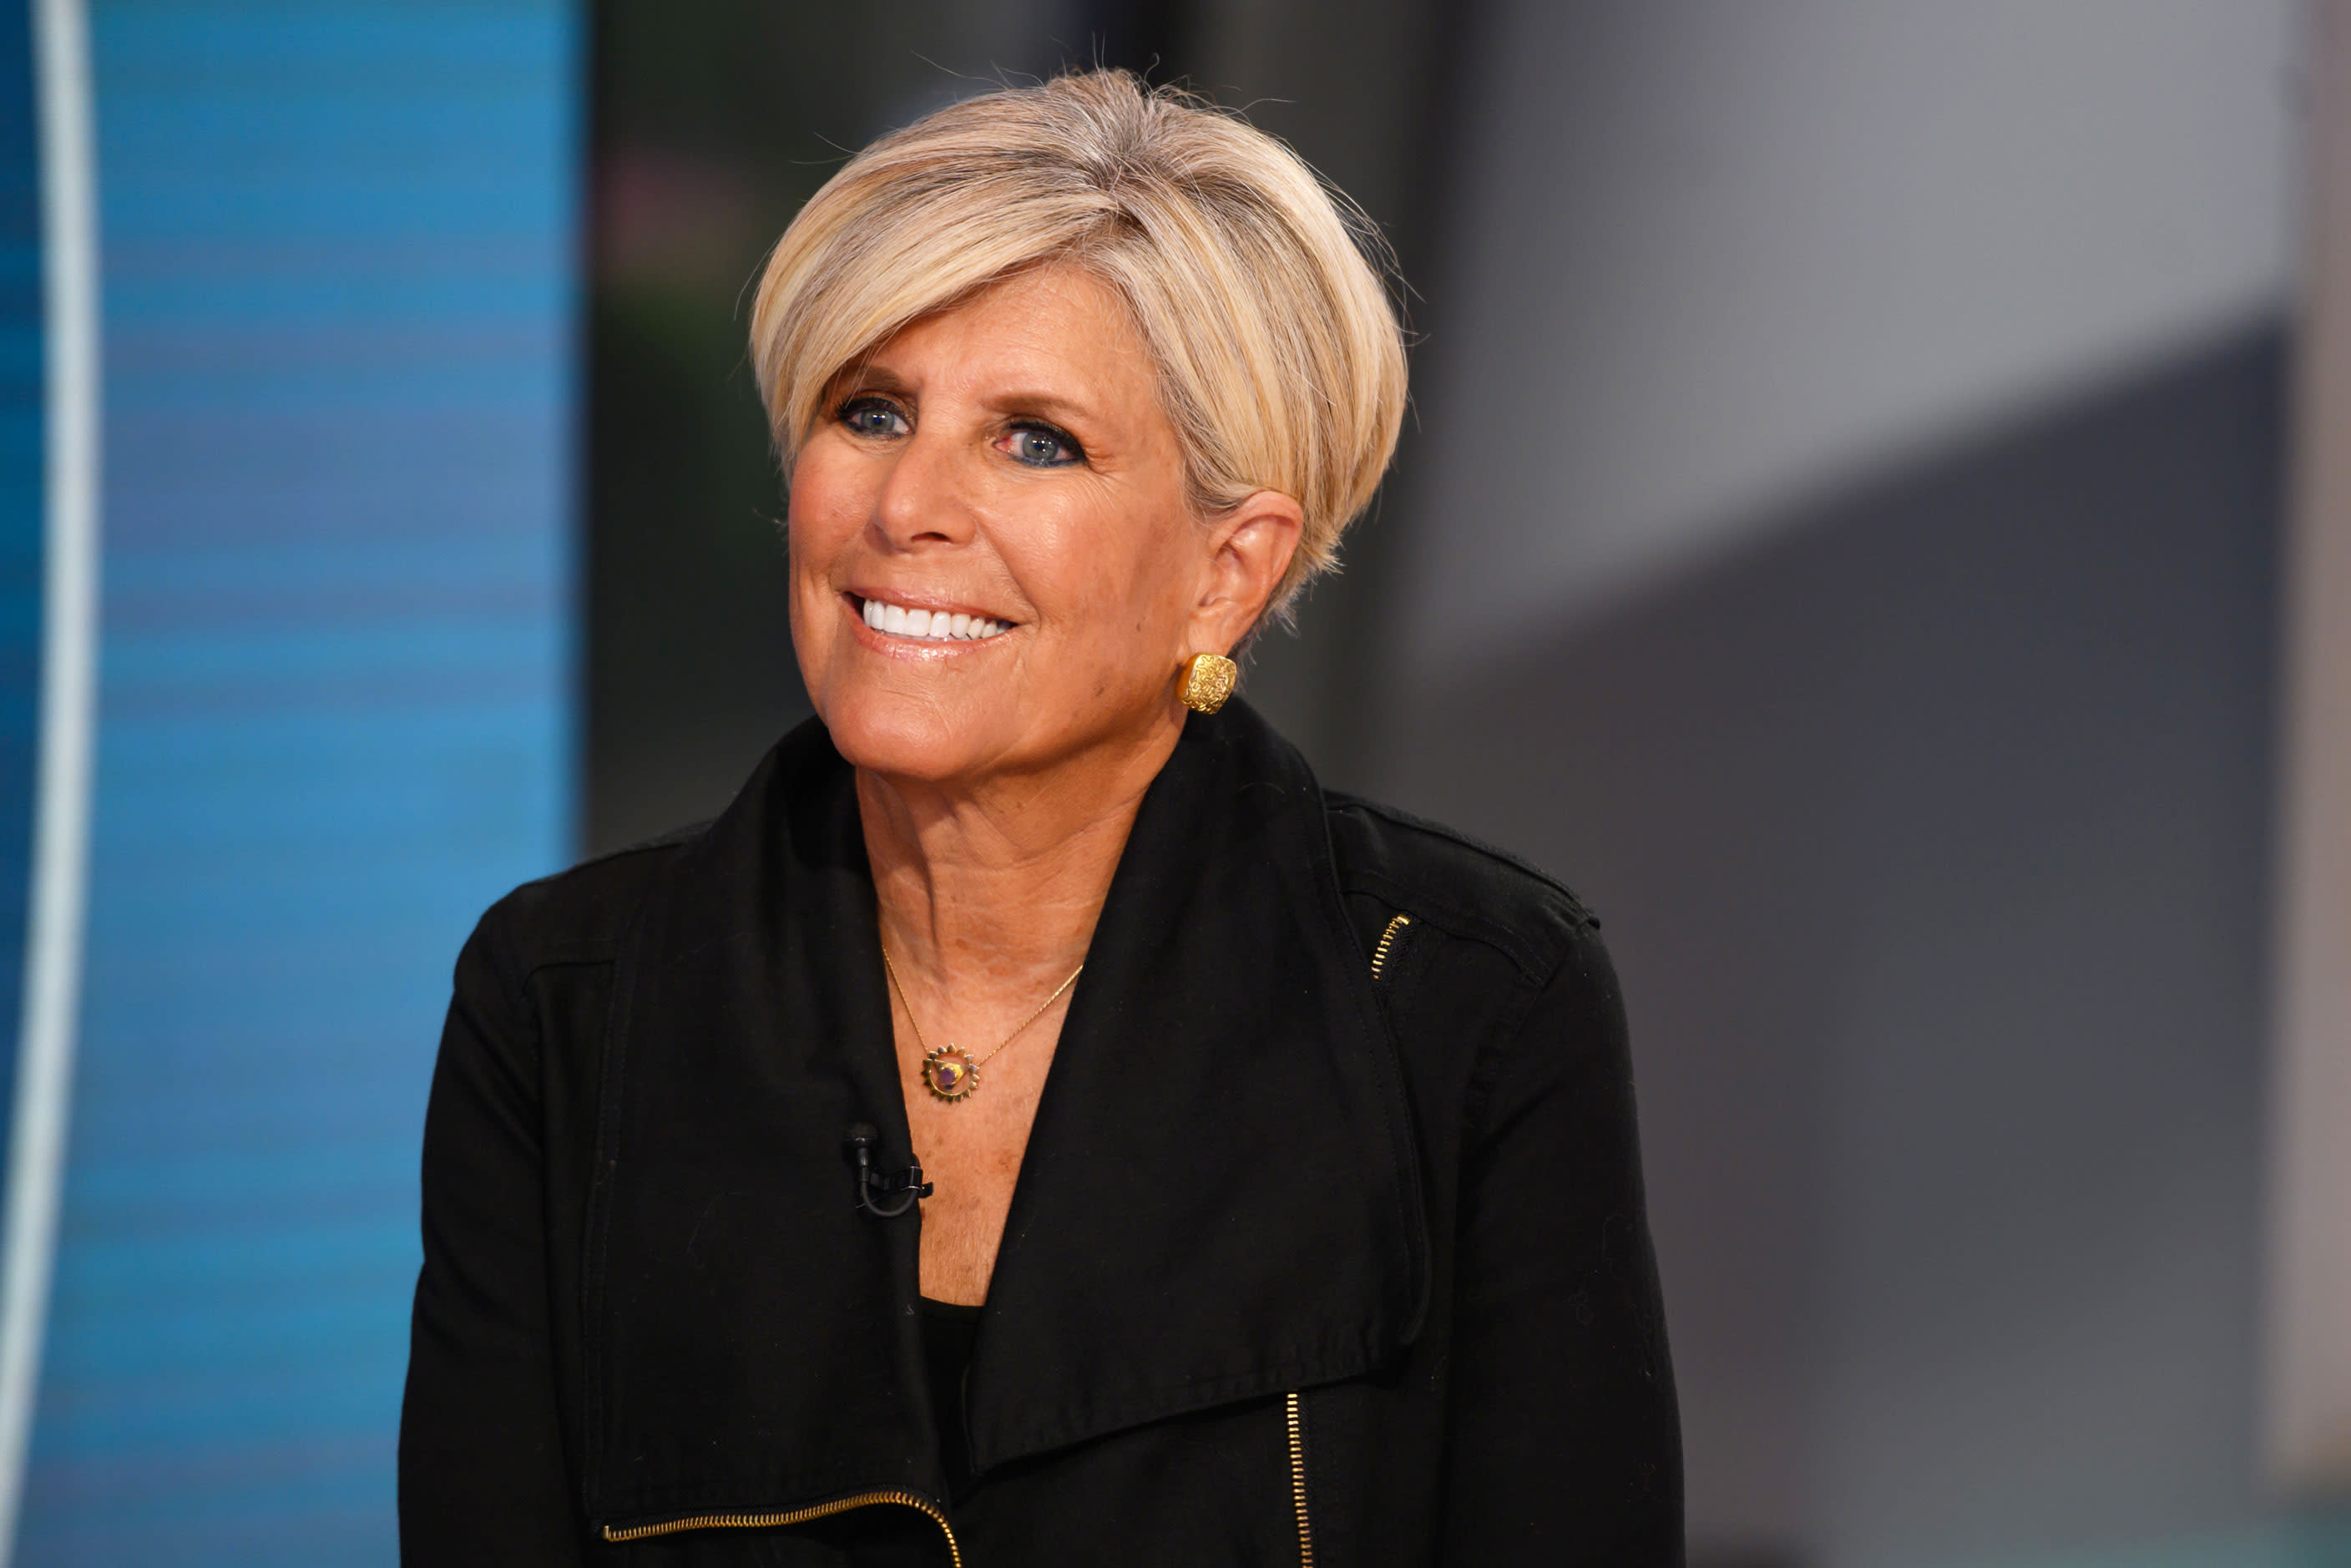 Suze Orman keeps exactly $170 in her wallet—here's why